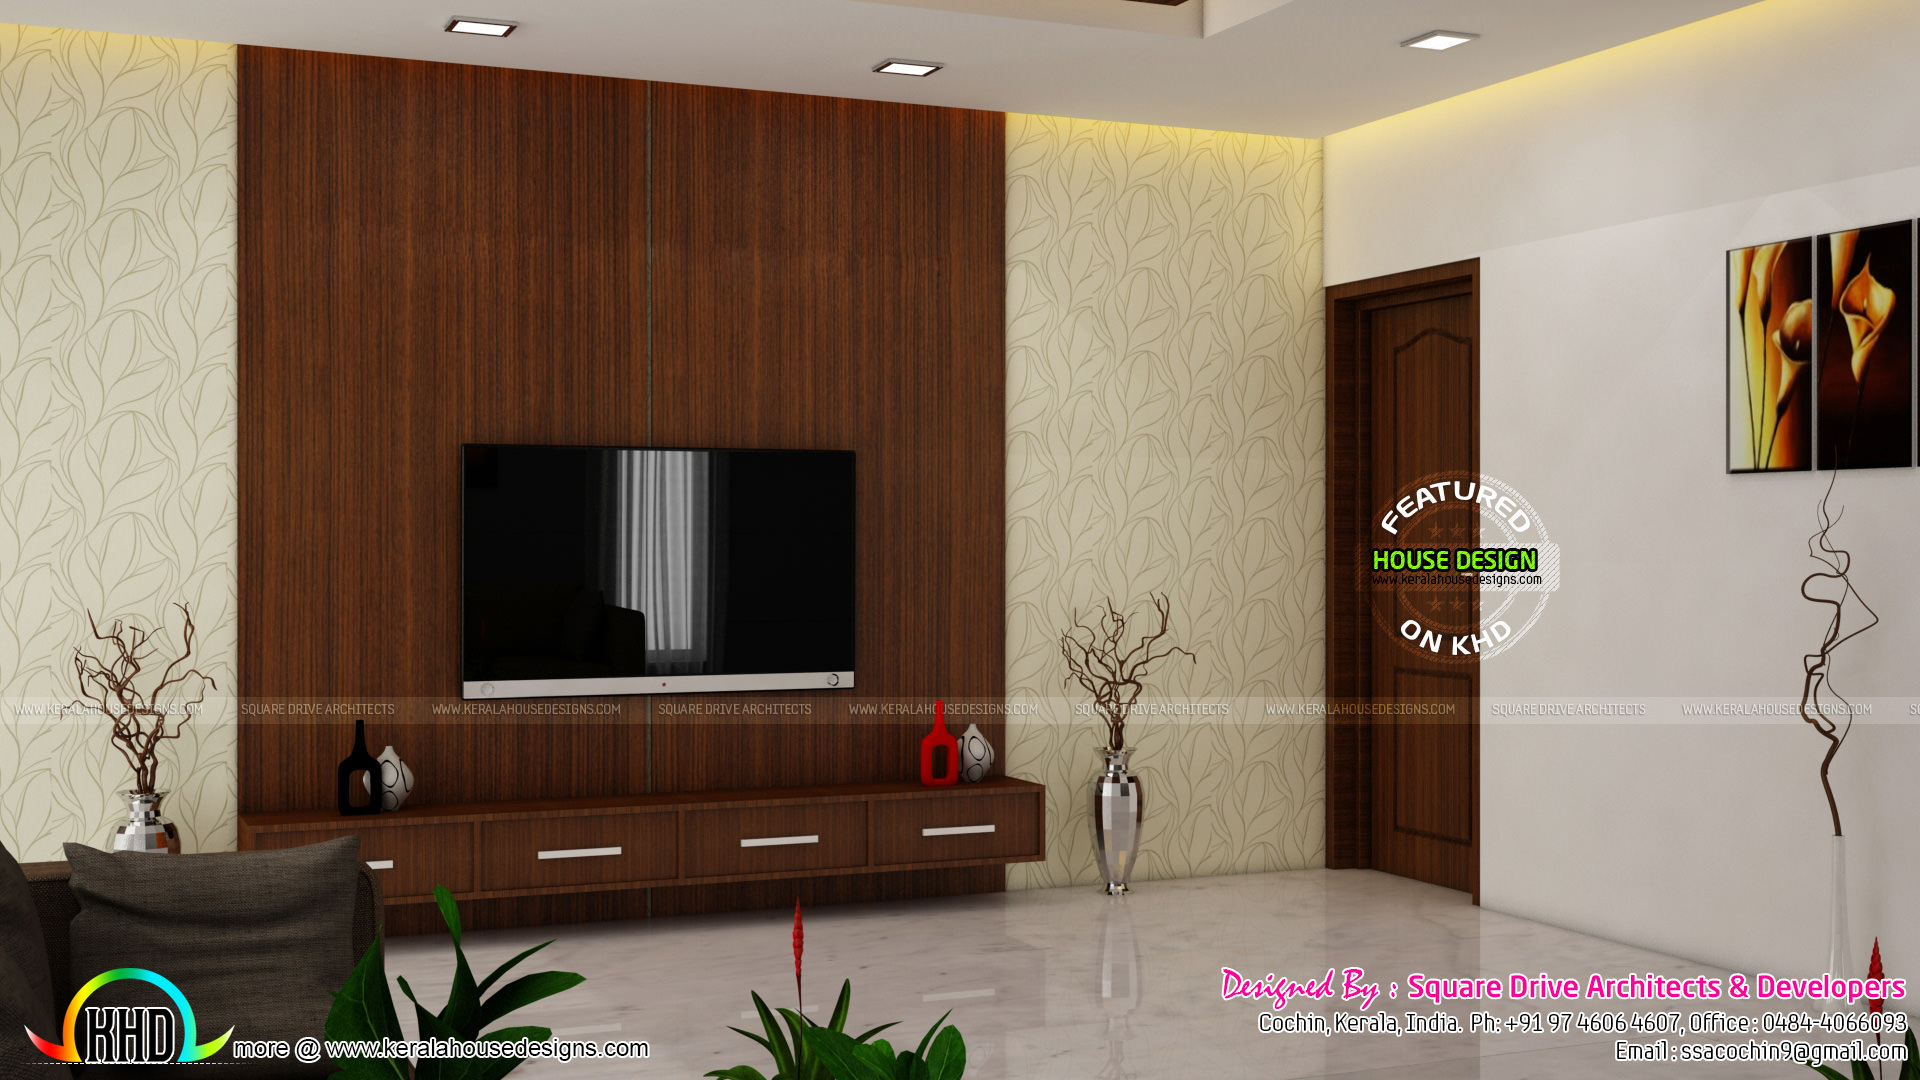 Tv wardrobe design for bed room crowdbuild for for Master bedroom wardrobe designs india